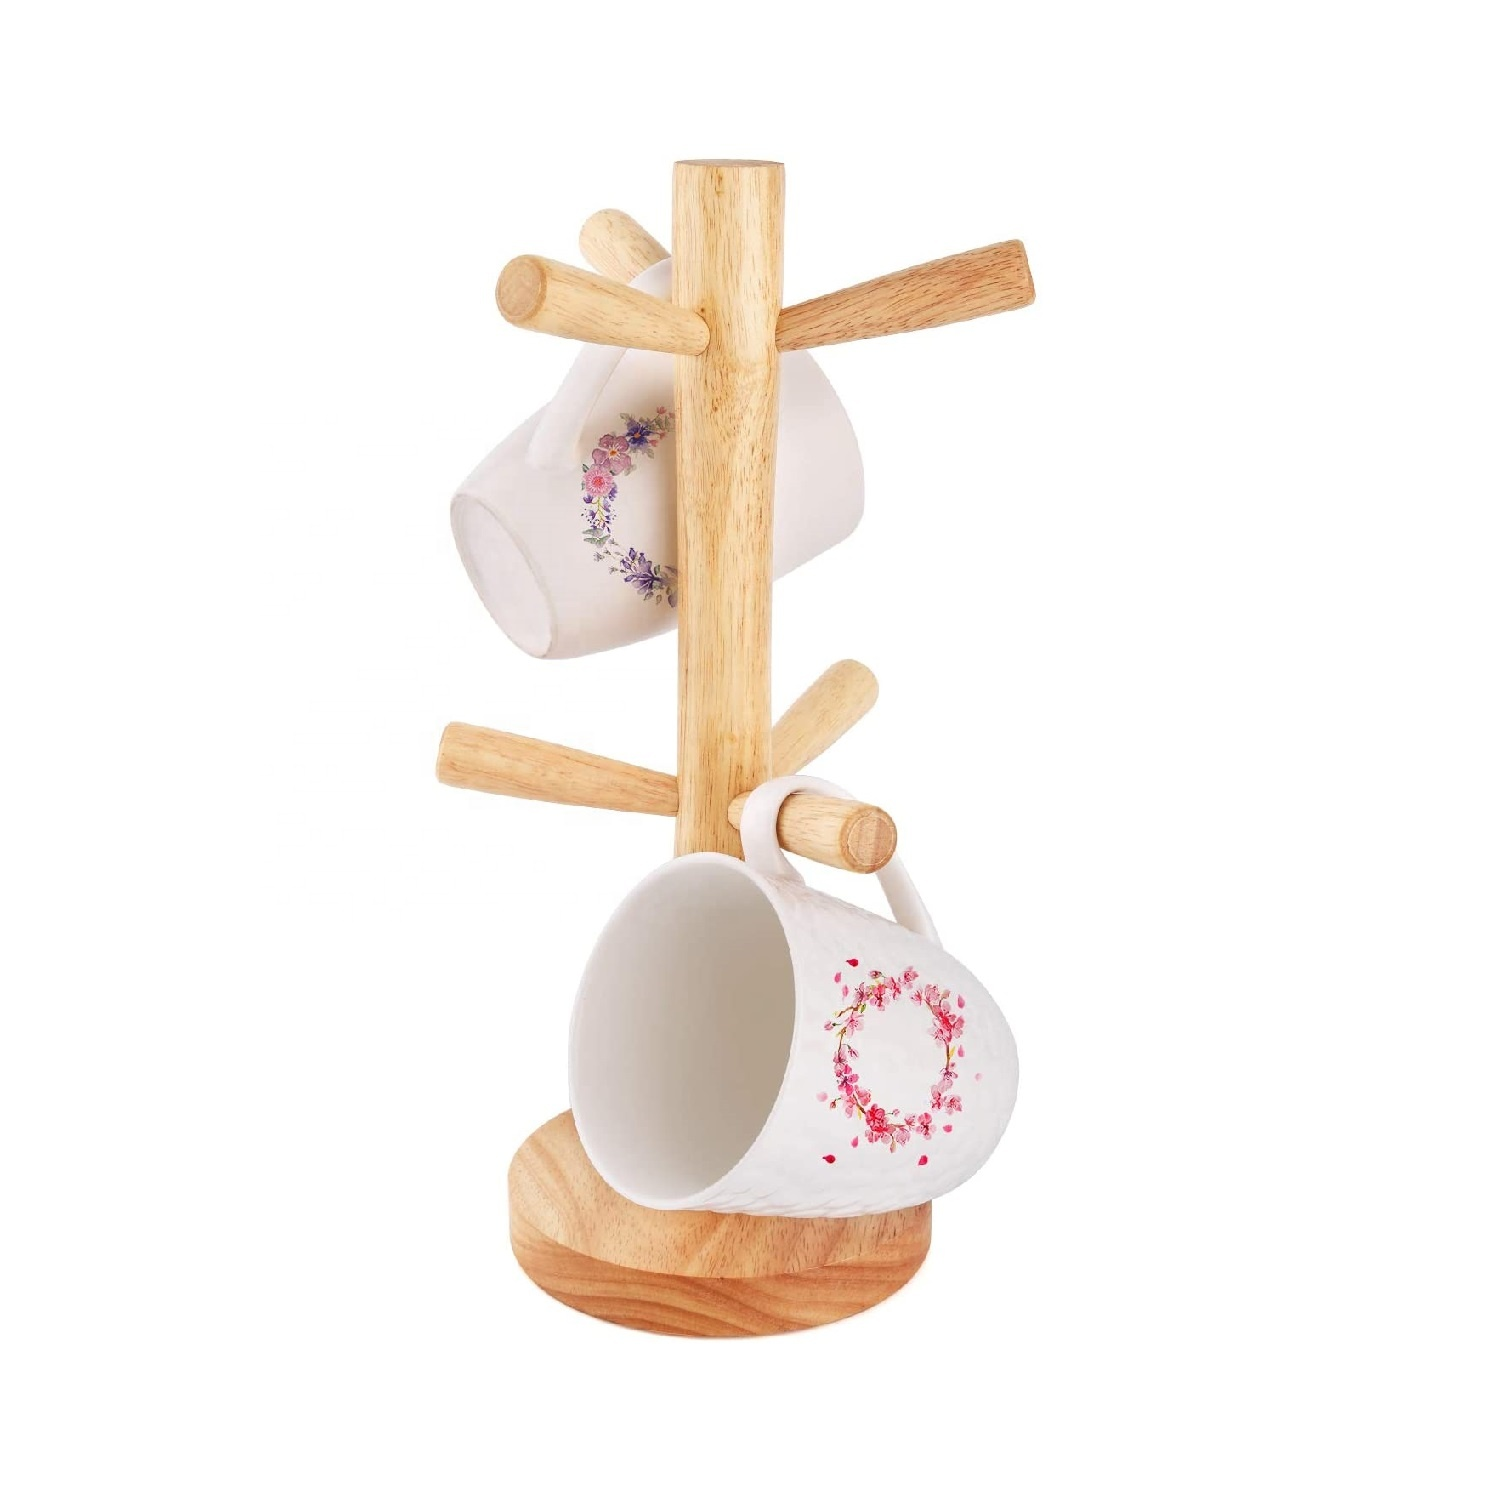 Kitchen Coffee Mug Cup Holder Rack Wooden Mug Holder Tree Display Stand Buy Custom Wooden Mug Tree Mug Holder Rack Tabletop Holder Hot Selling Mug Display Stand Storage Coffee Tea Cup